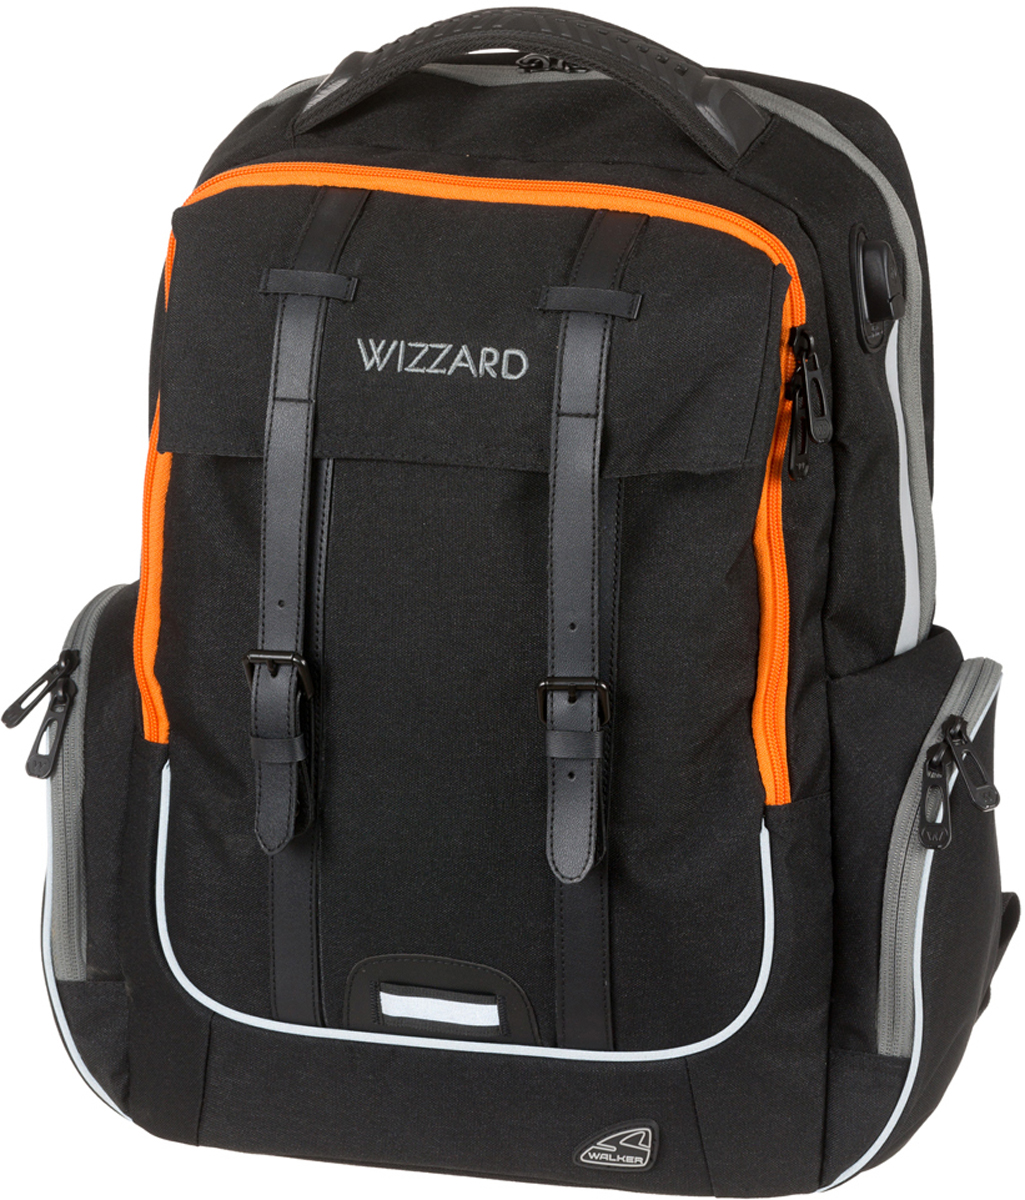 Schneiders Рюкзак Walker Wizard Academy Black Melange